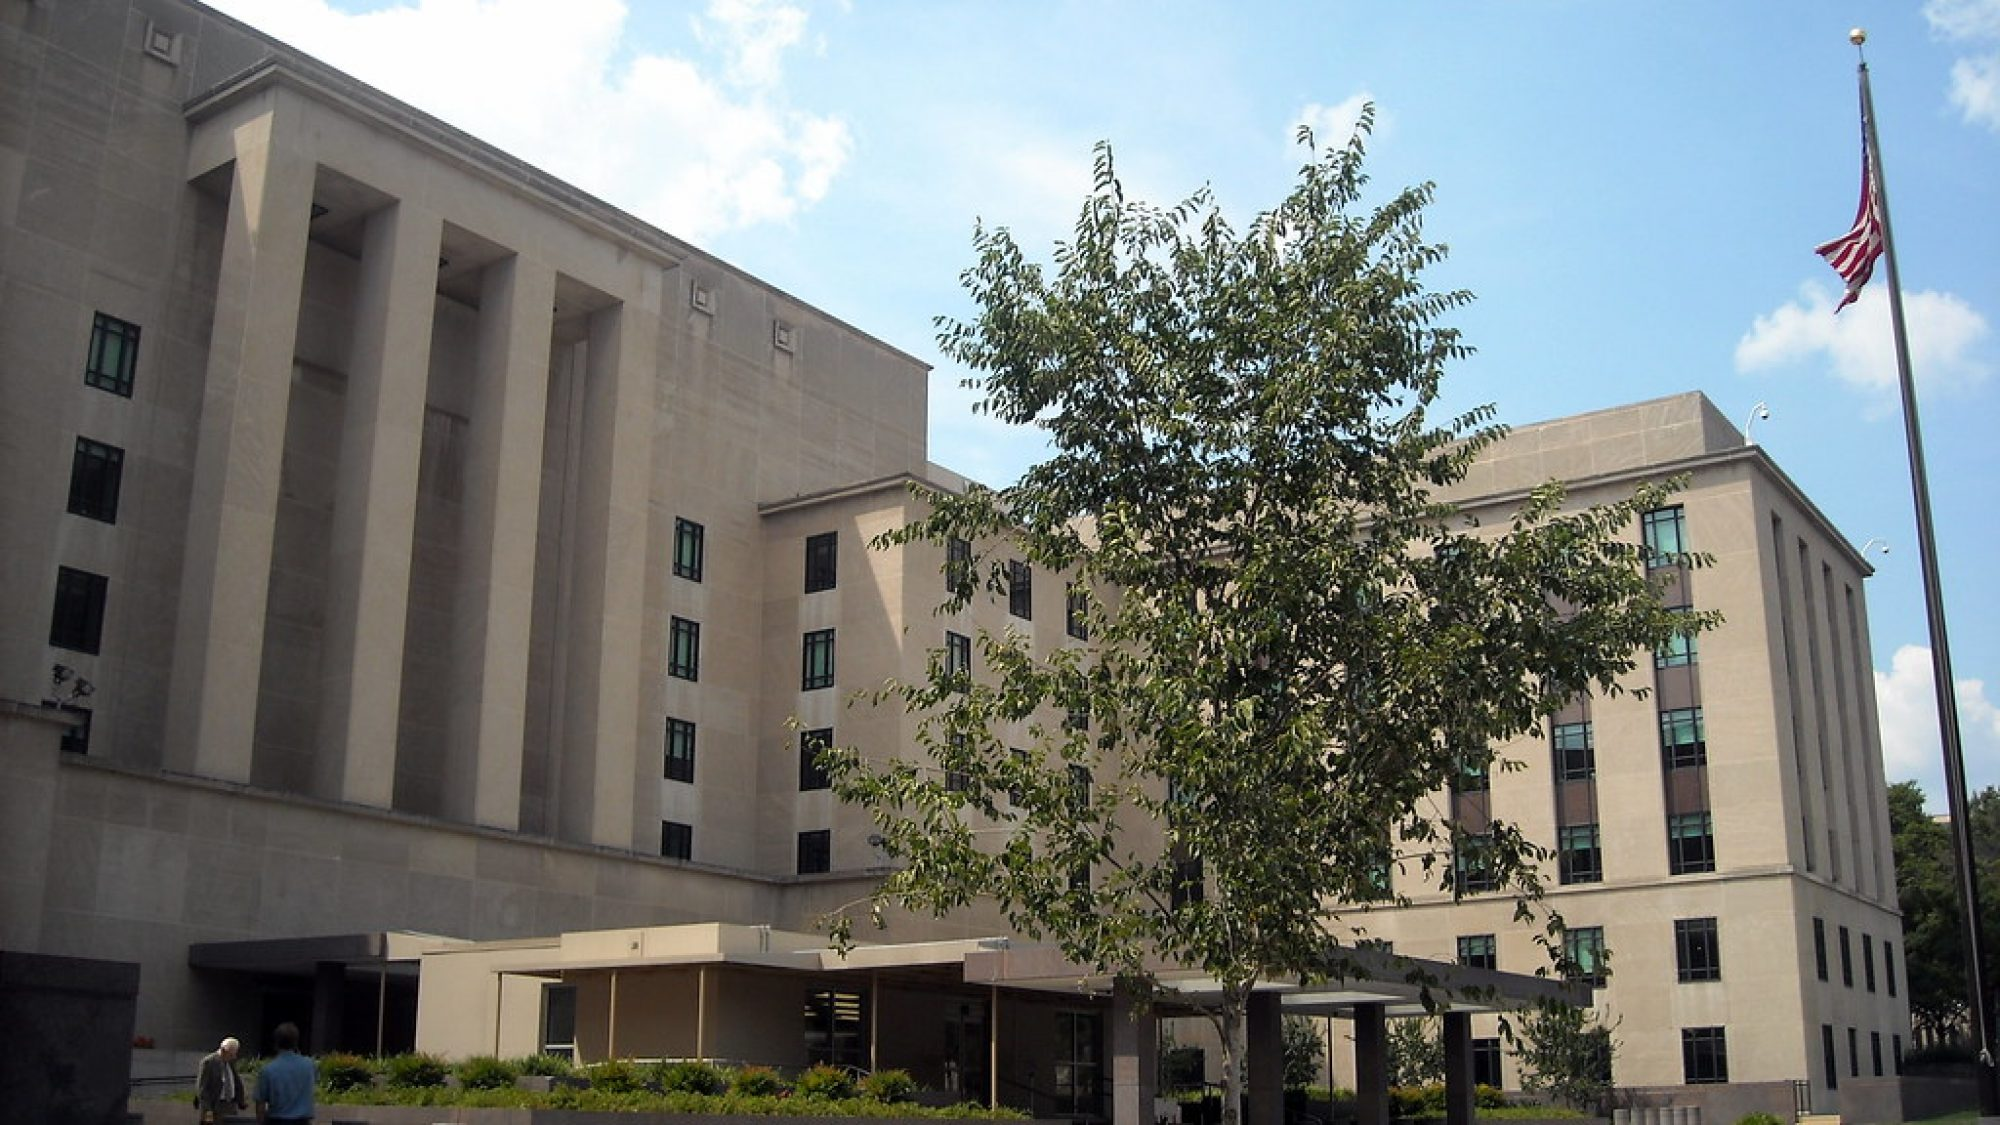 Harry S. Truman Building, U.S. Department of State